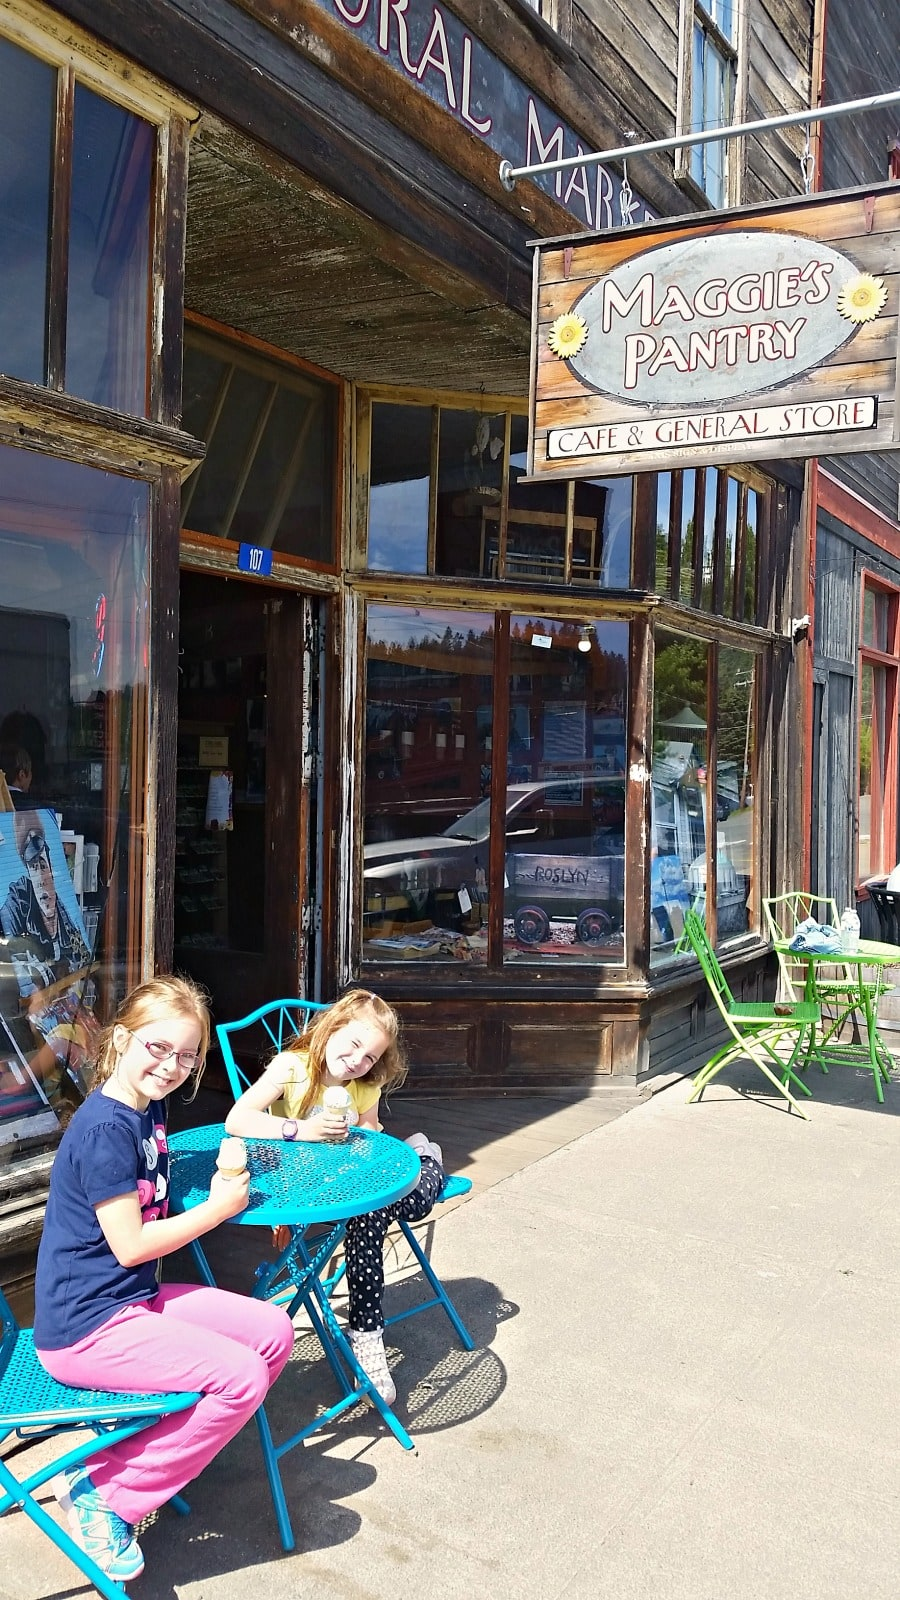 Maggie's Pantry - An Organic Grocery Store, Cafe & Ice Cream Shop in Roslyn WA